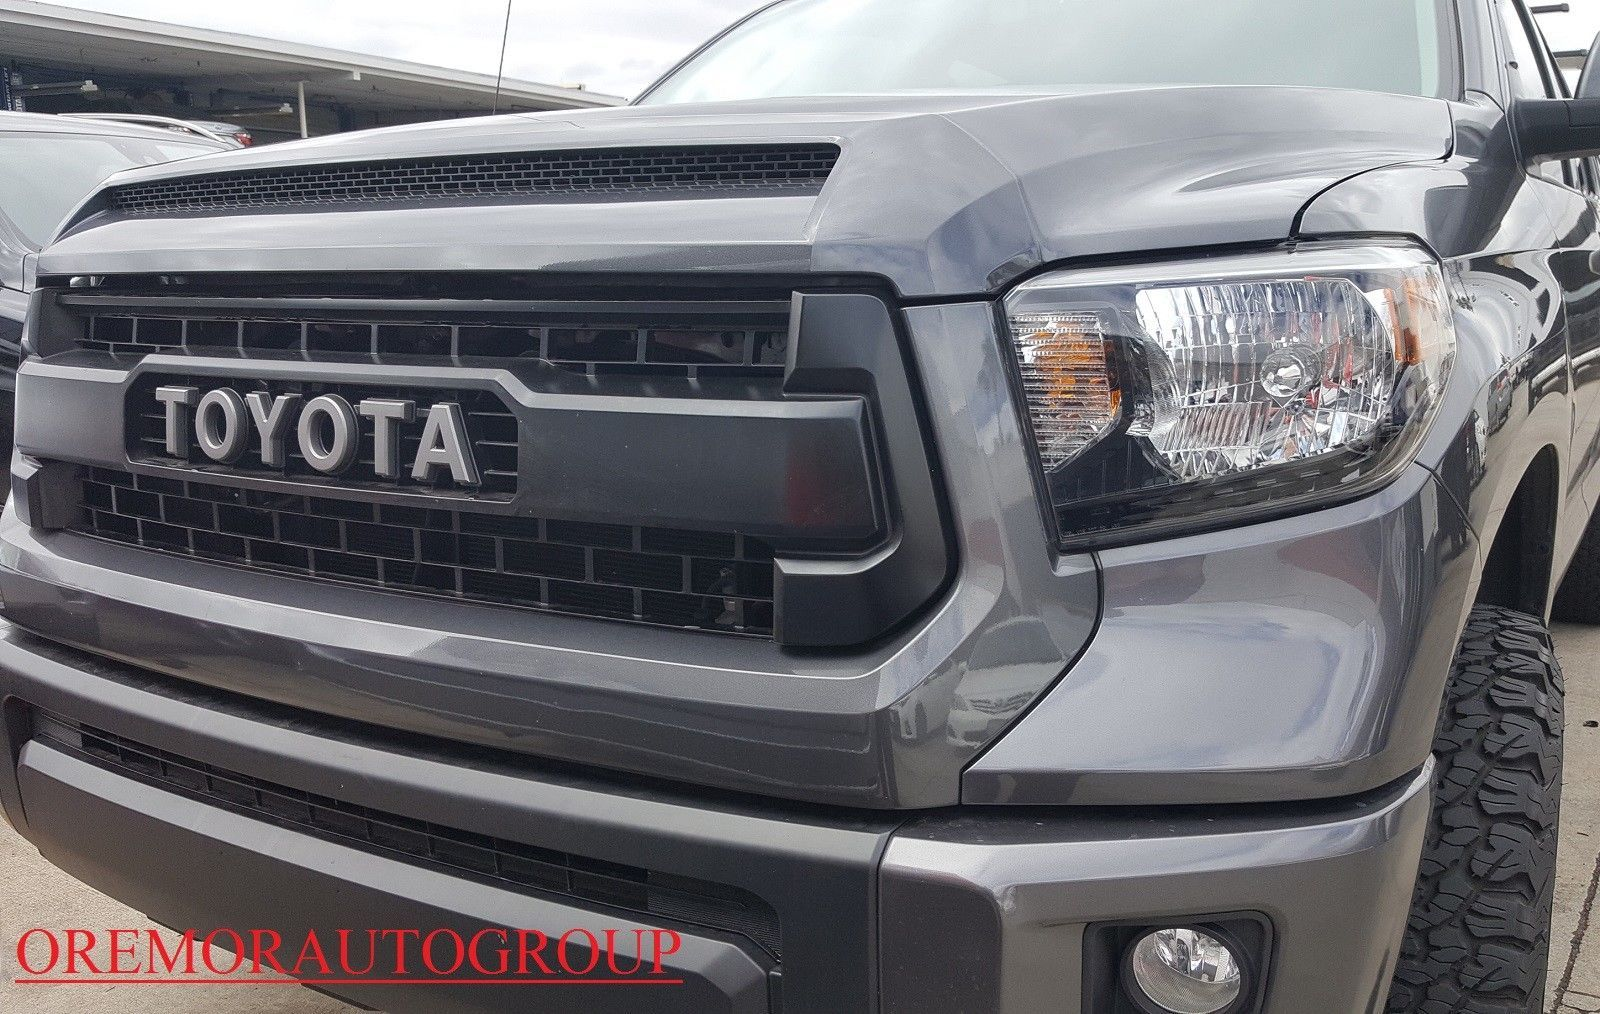 Awesome 14 17 Genuine Tundra Trd Pro Grill Bulge Toyota 1g3 Magnetic Gray Metallic Oem 2017 2018